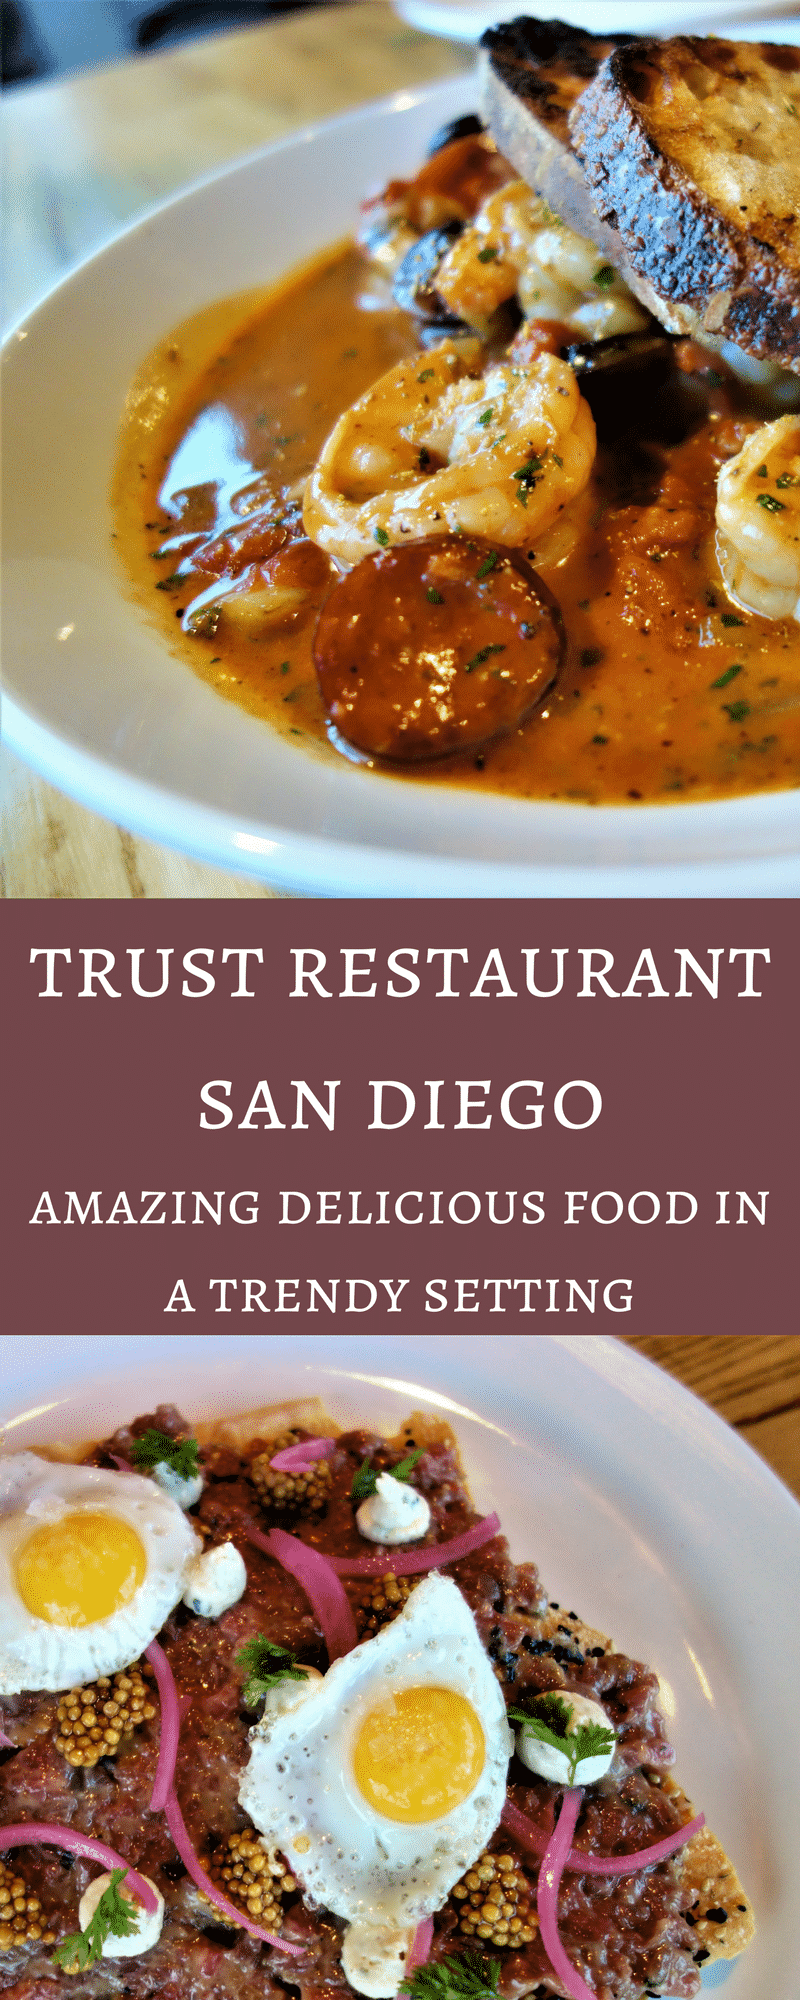 The Awesome Cuisine at TRUST Restaurant San Diego